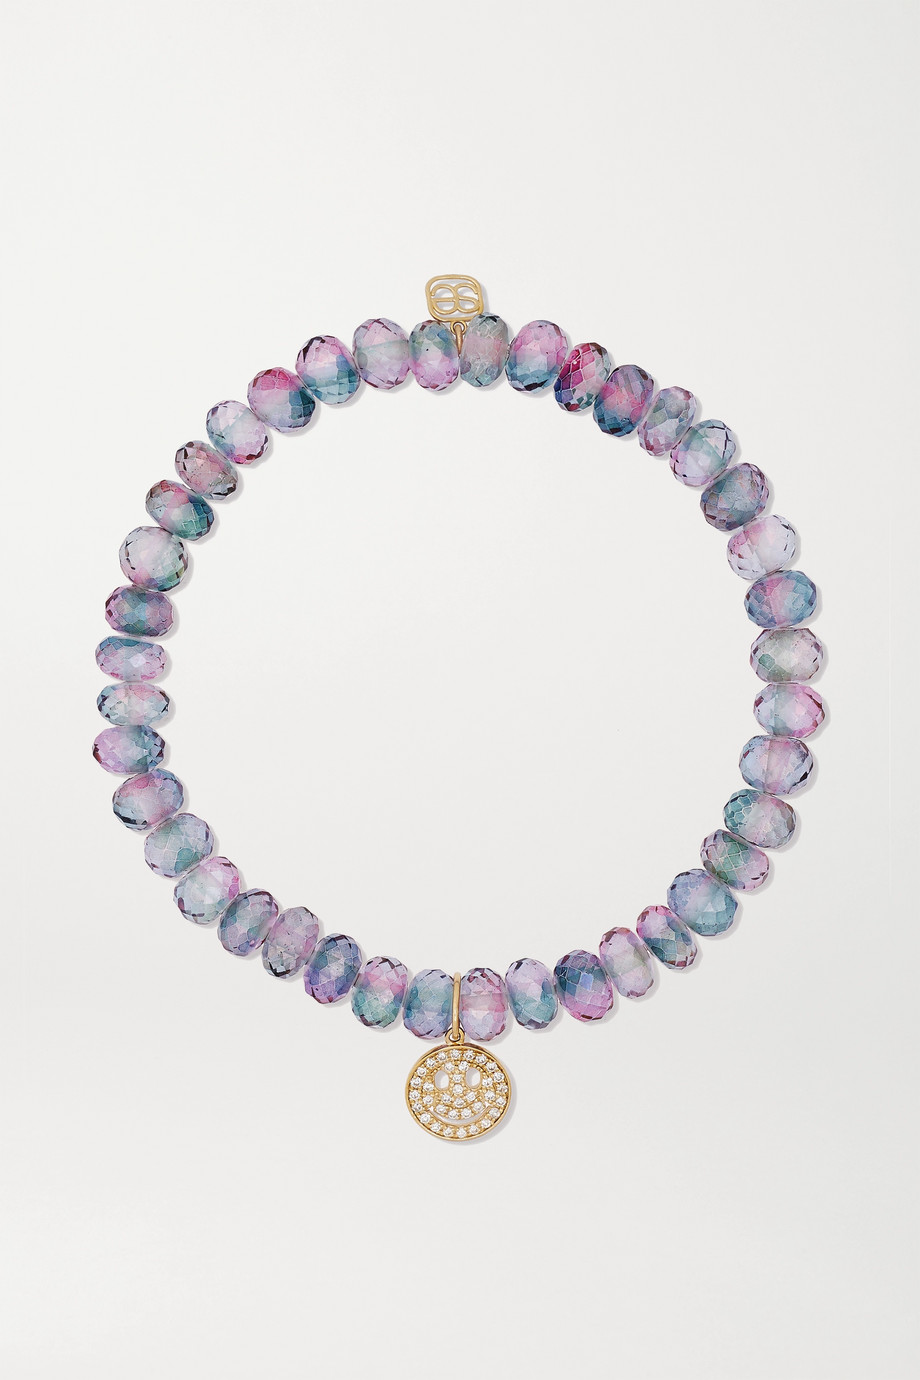 Sydney Evan Bracelet en or 14 carats, quartz et diamants Small Happy Face